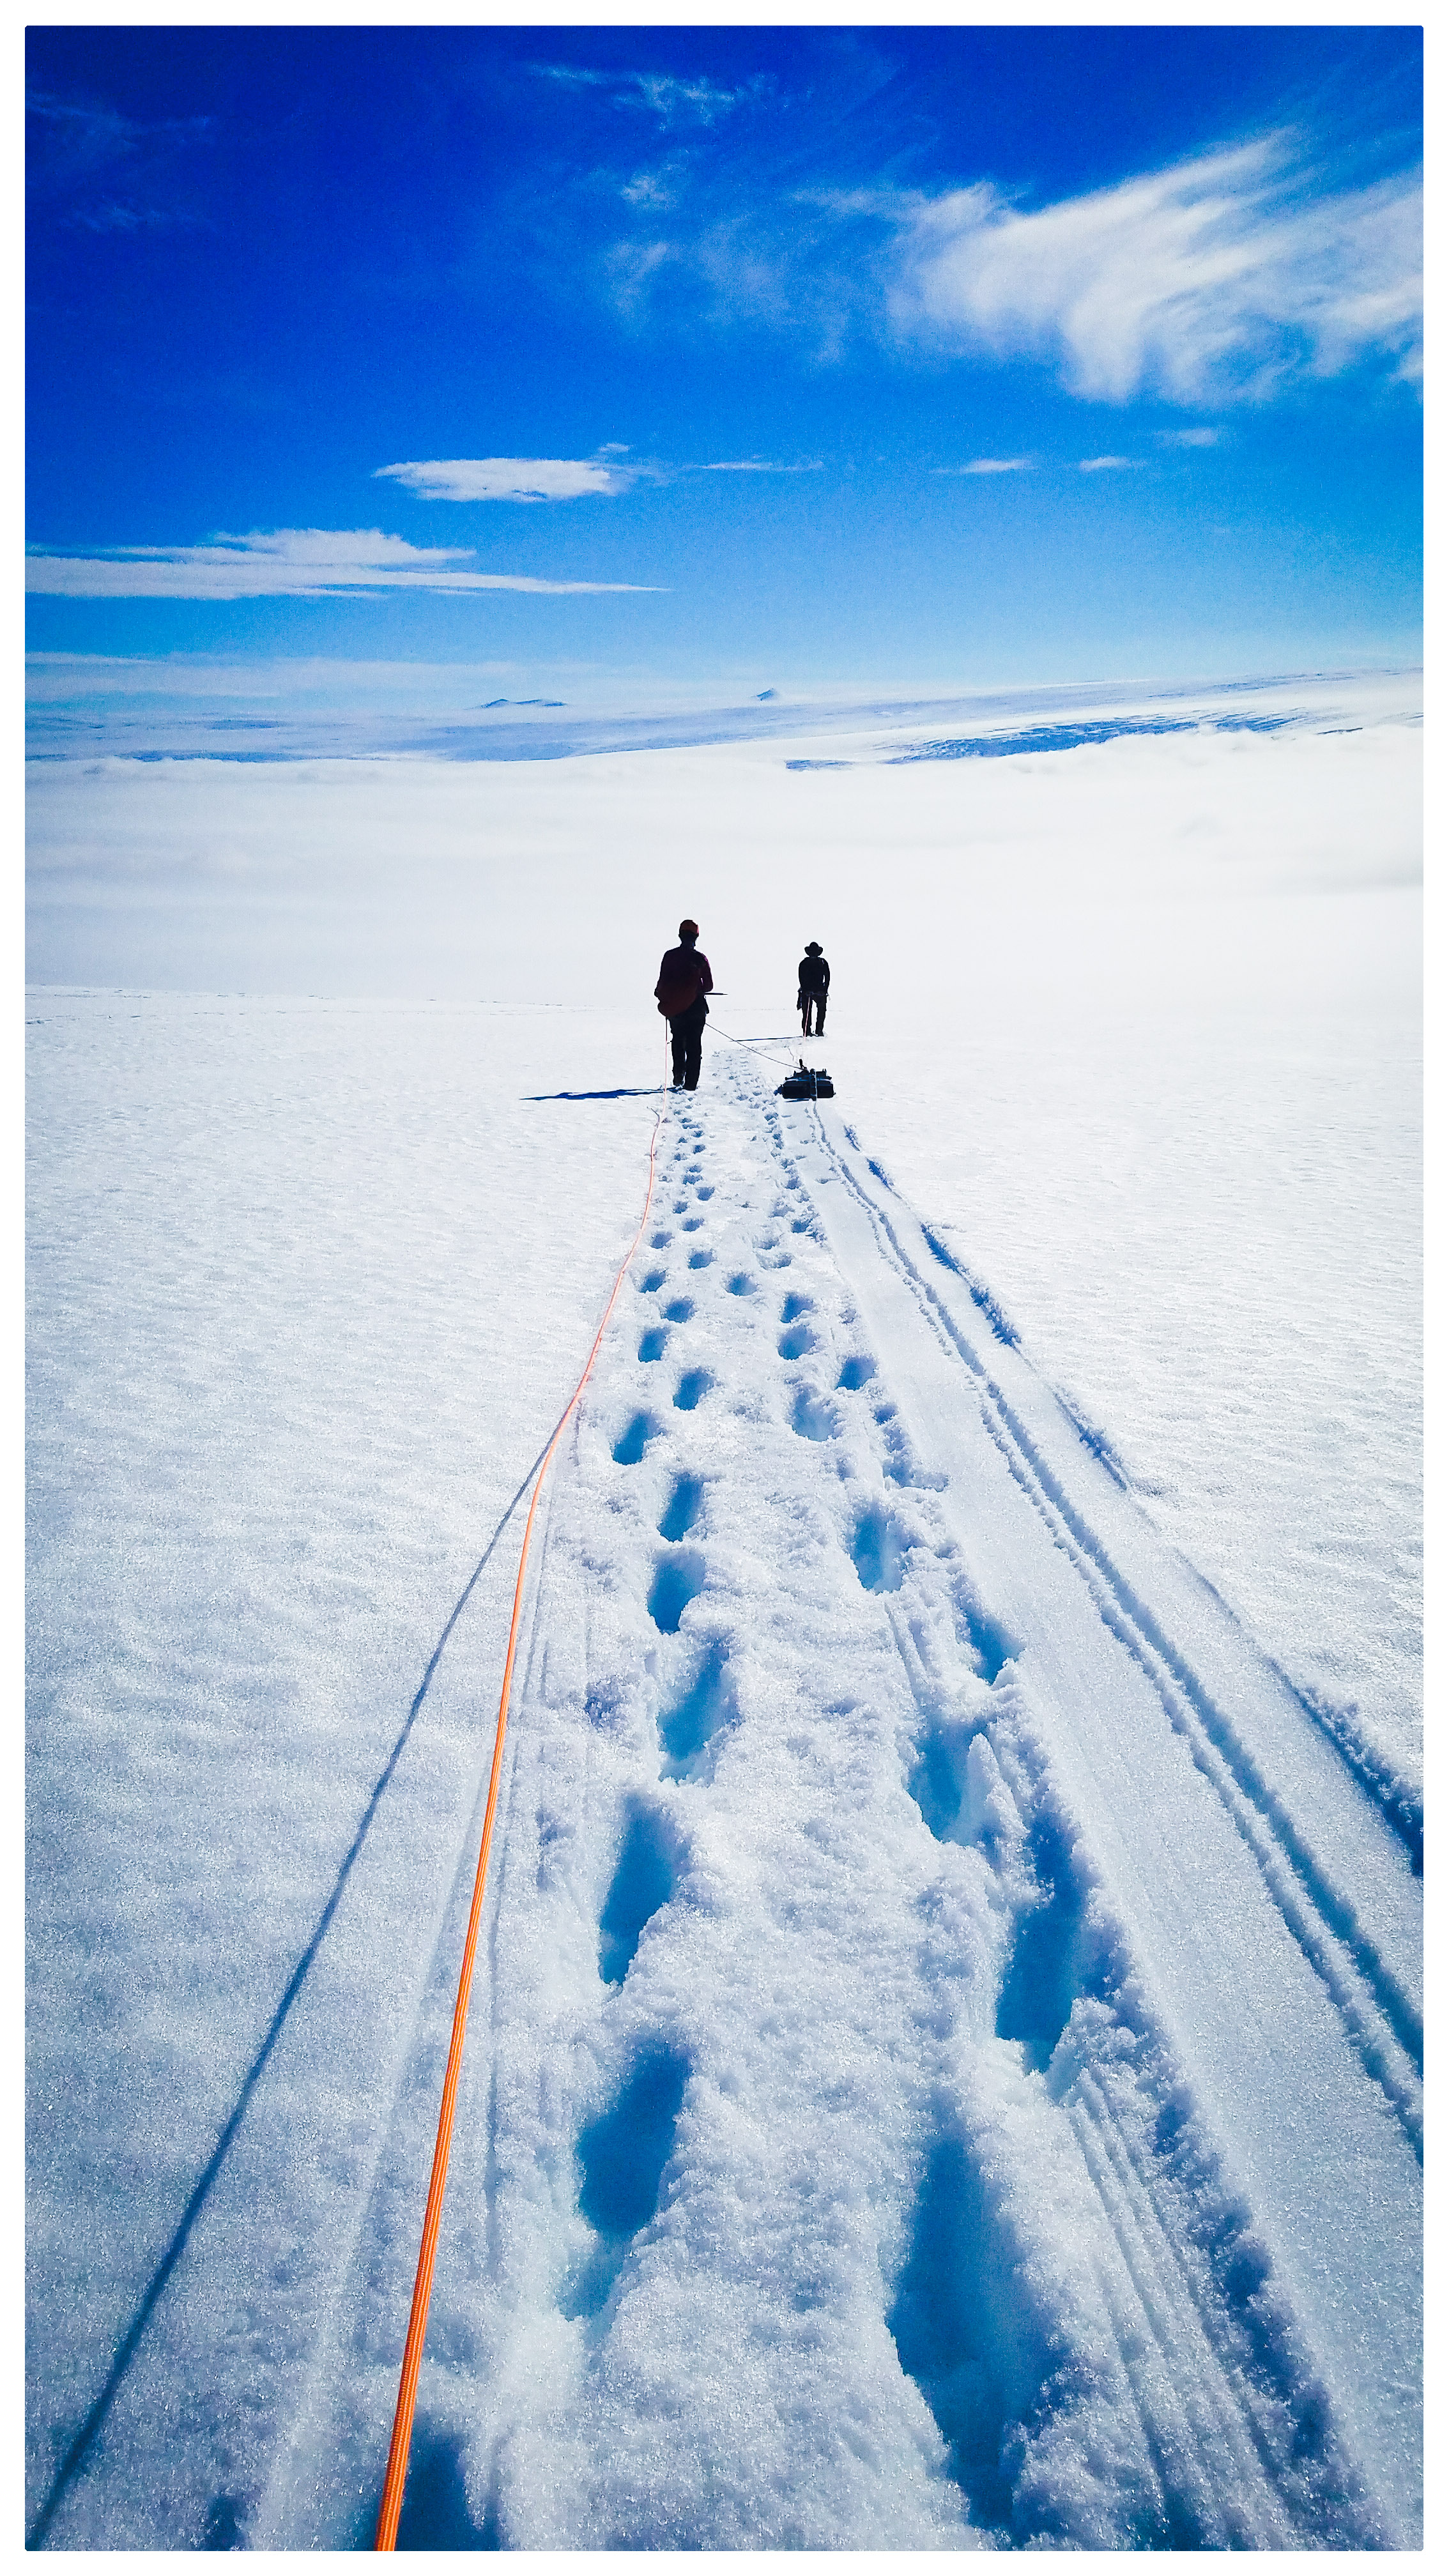 New Anomaly Discovered In Greenland Icecap In Search For Missing American Aviators